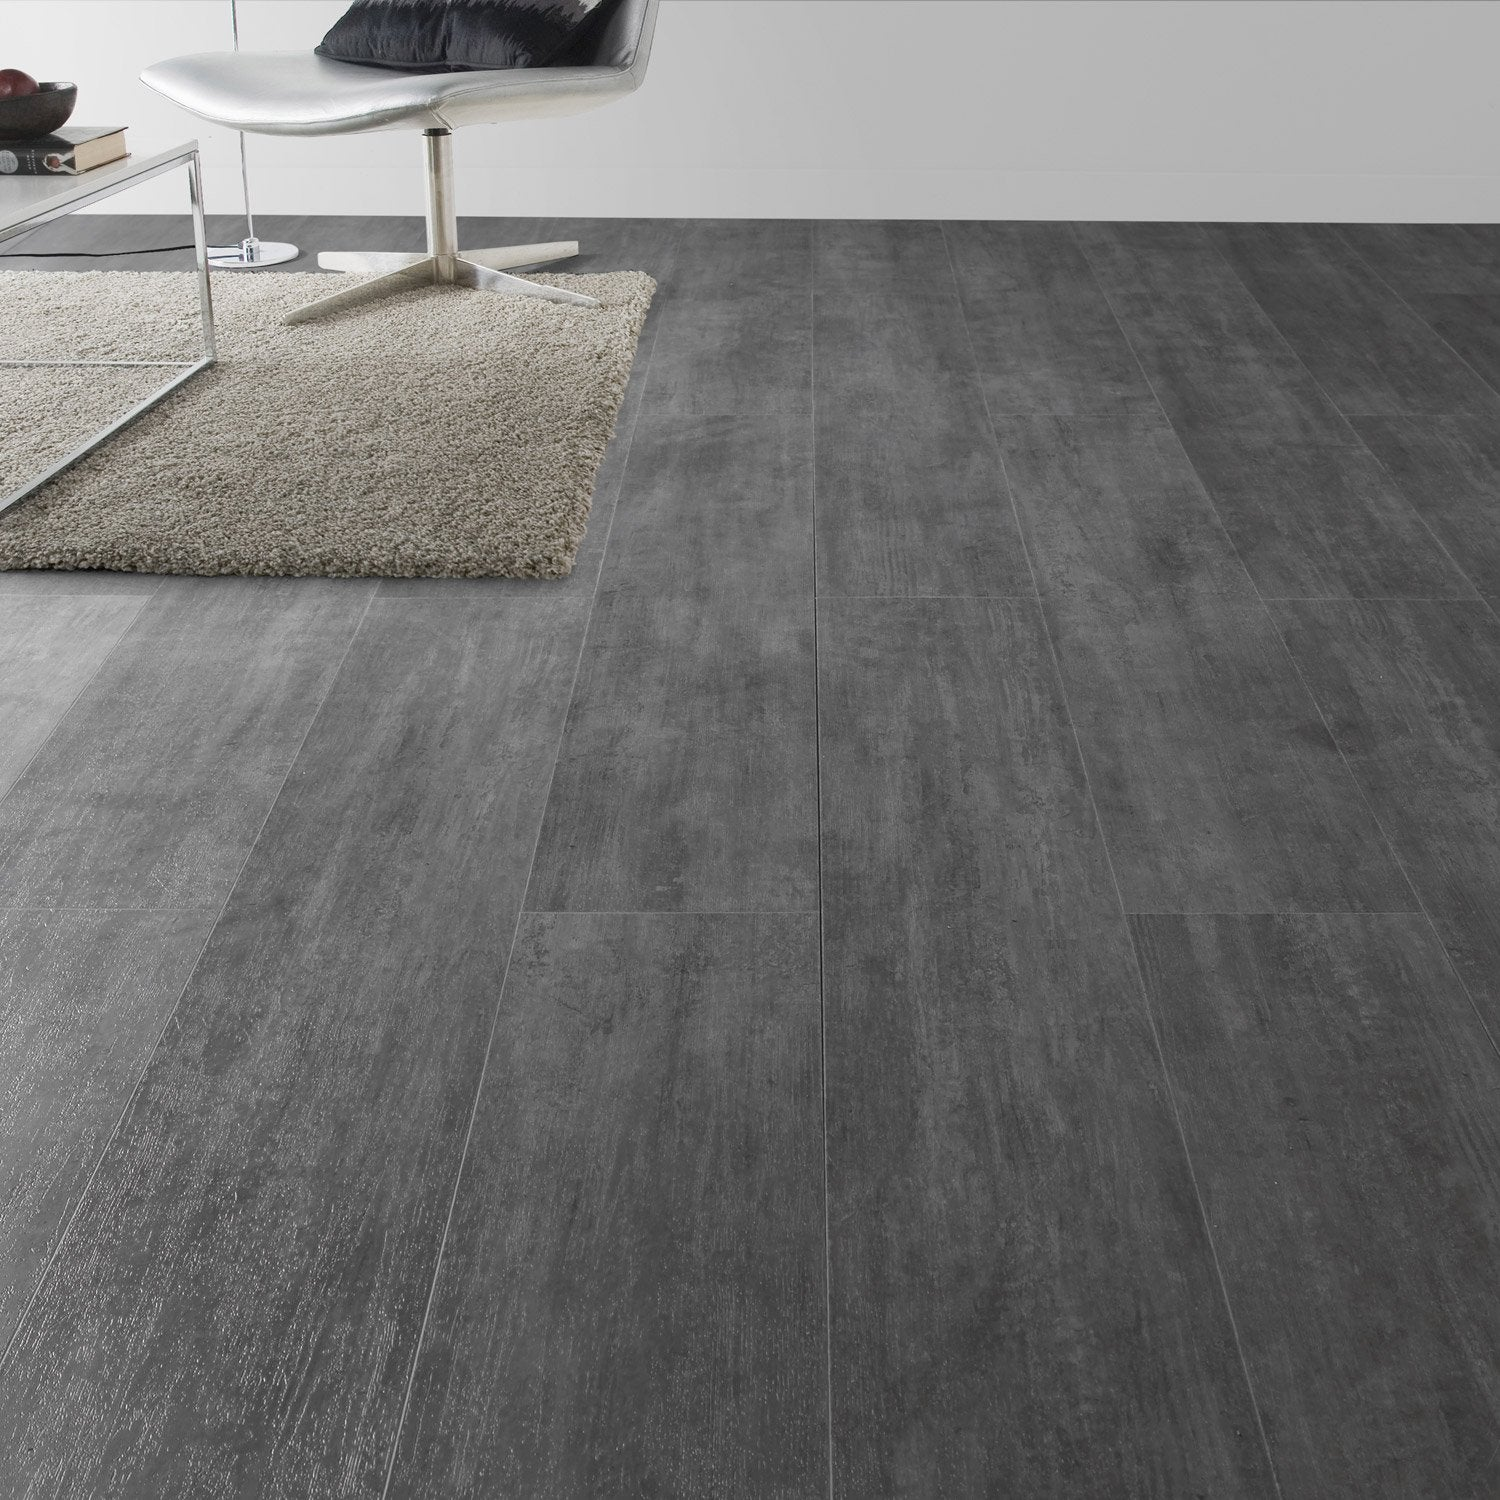 Lame pvc clipsable gris nolita grey senso lock gerflor for Salon jardin pvc gris